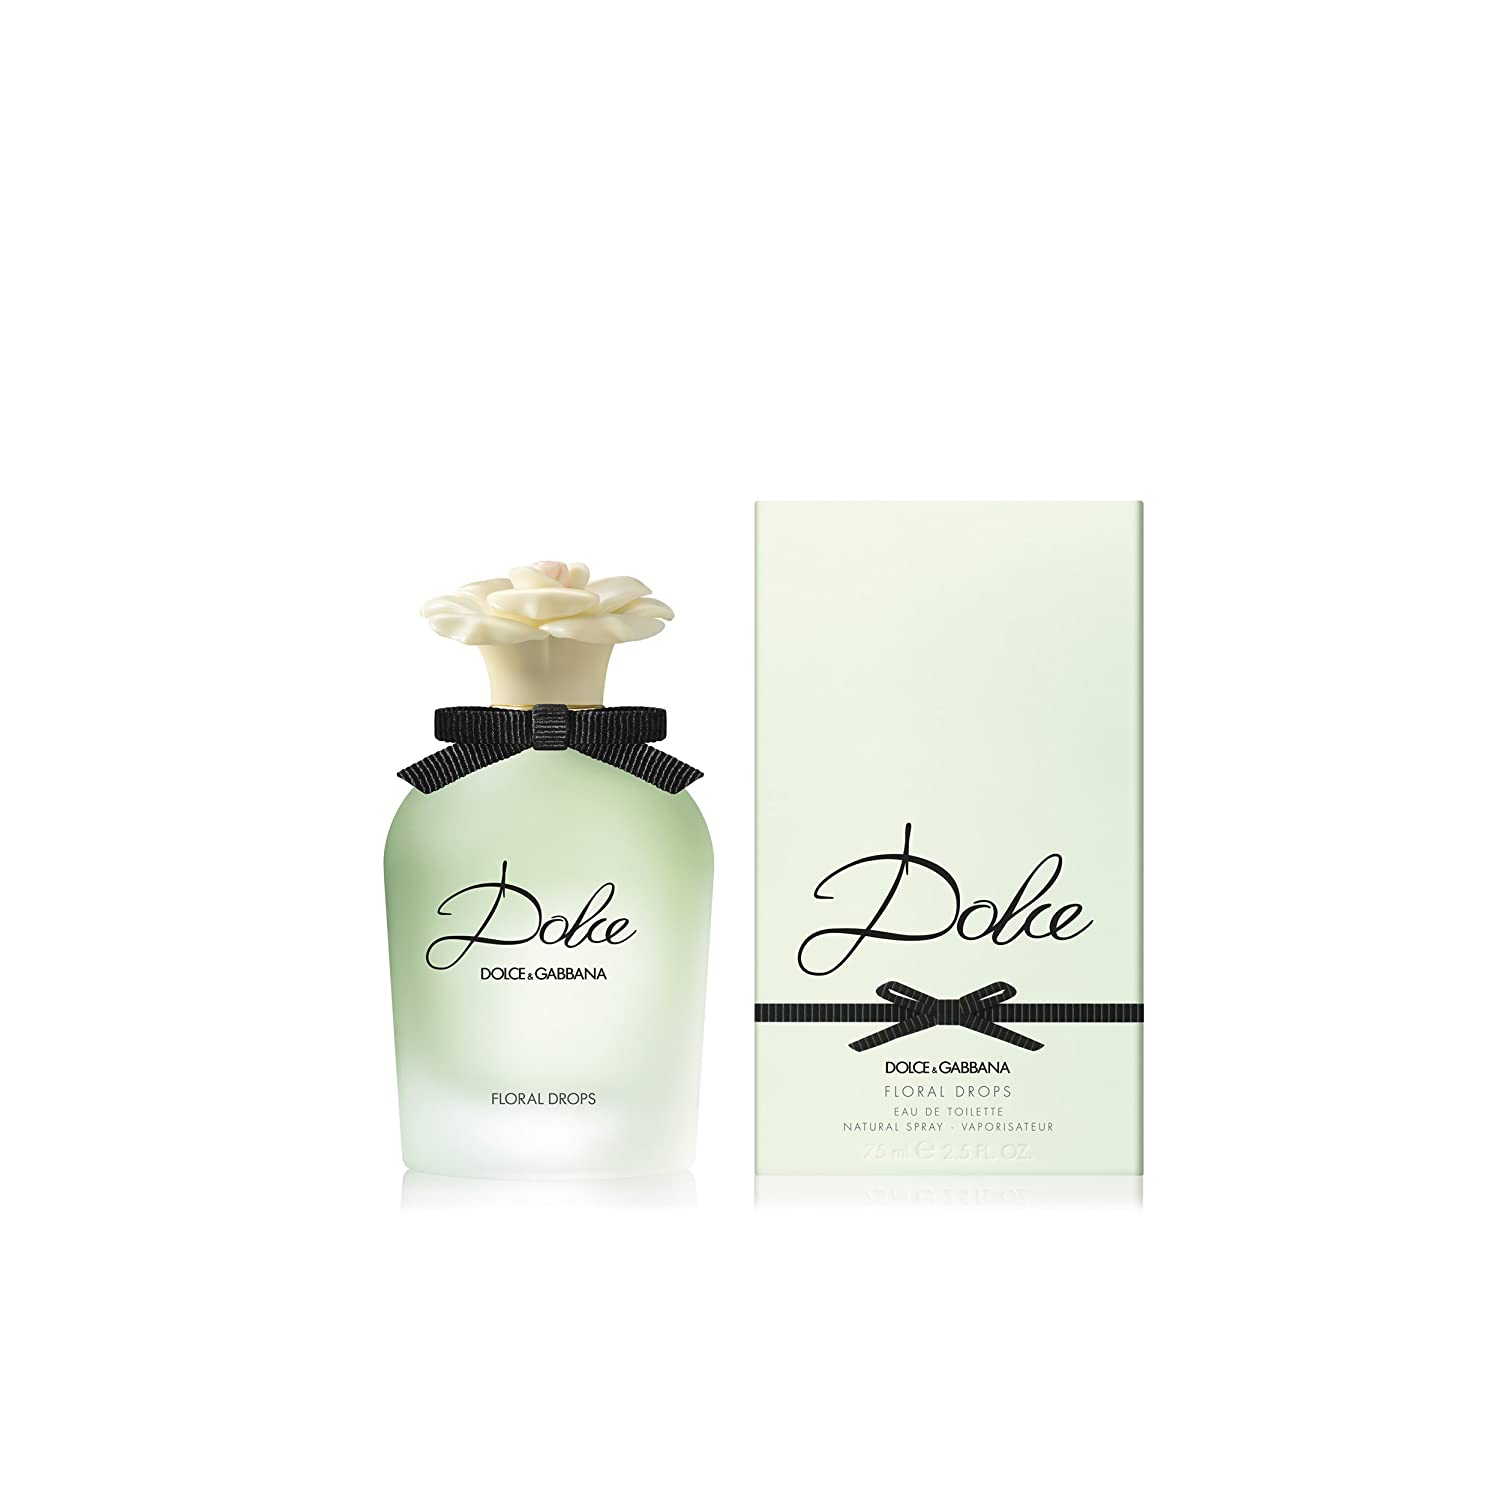 6a771e4c1a6db Dolce And Gabbana Dolce Floral Drops Eau de Toilette Spray 75ml   Amazon.co.uk  Beauty